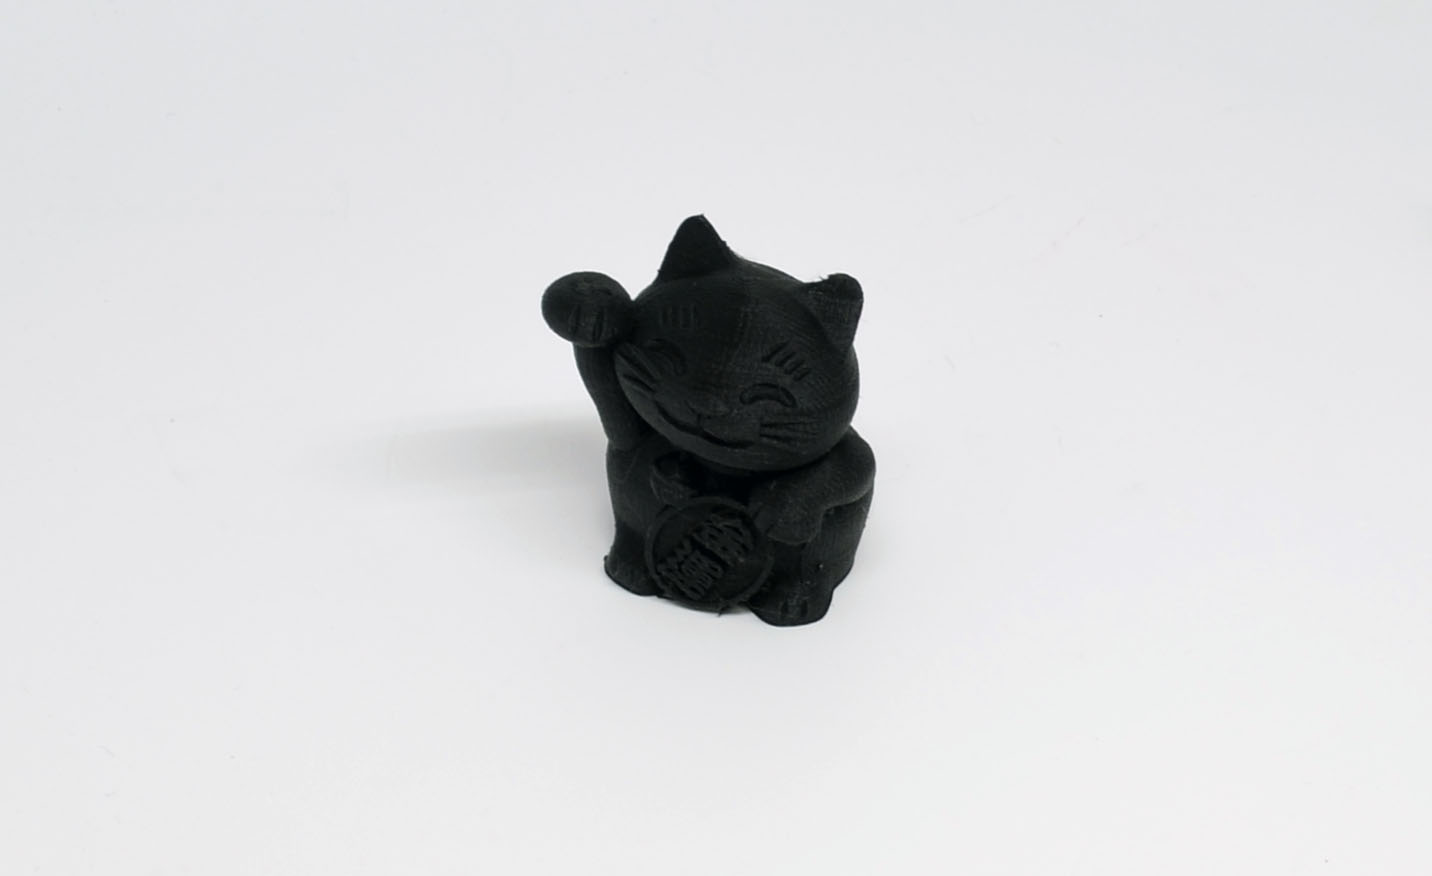 The final Fortune Cat looks great.